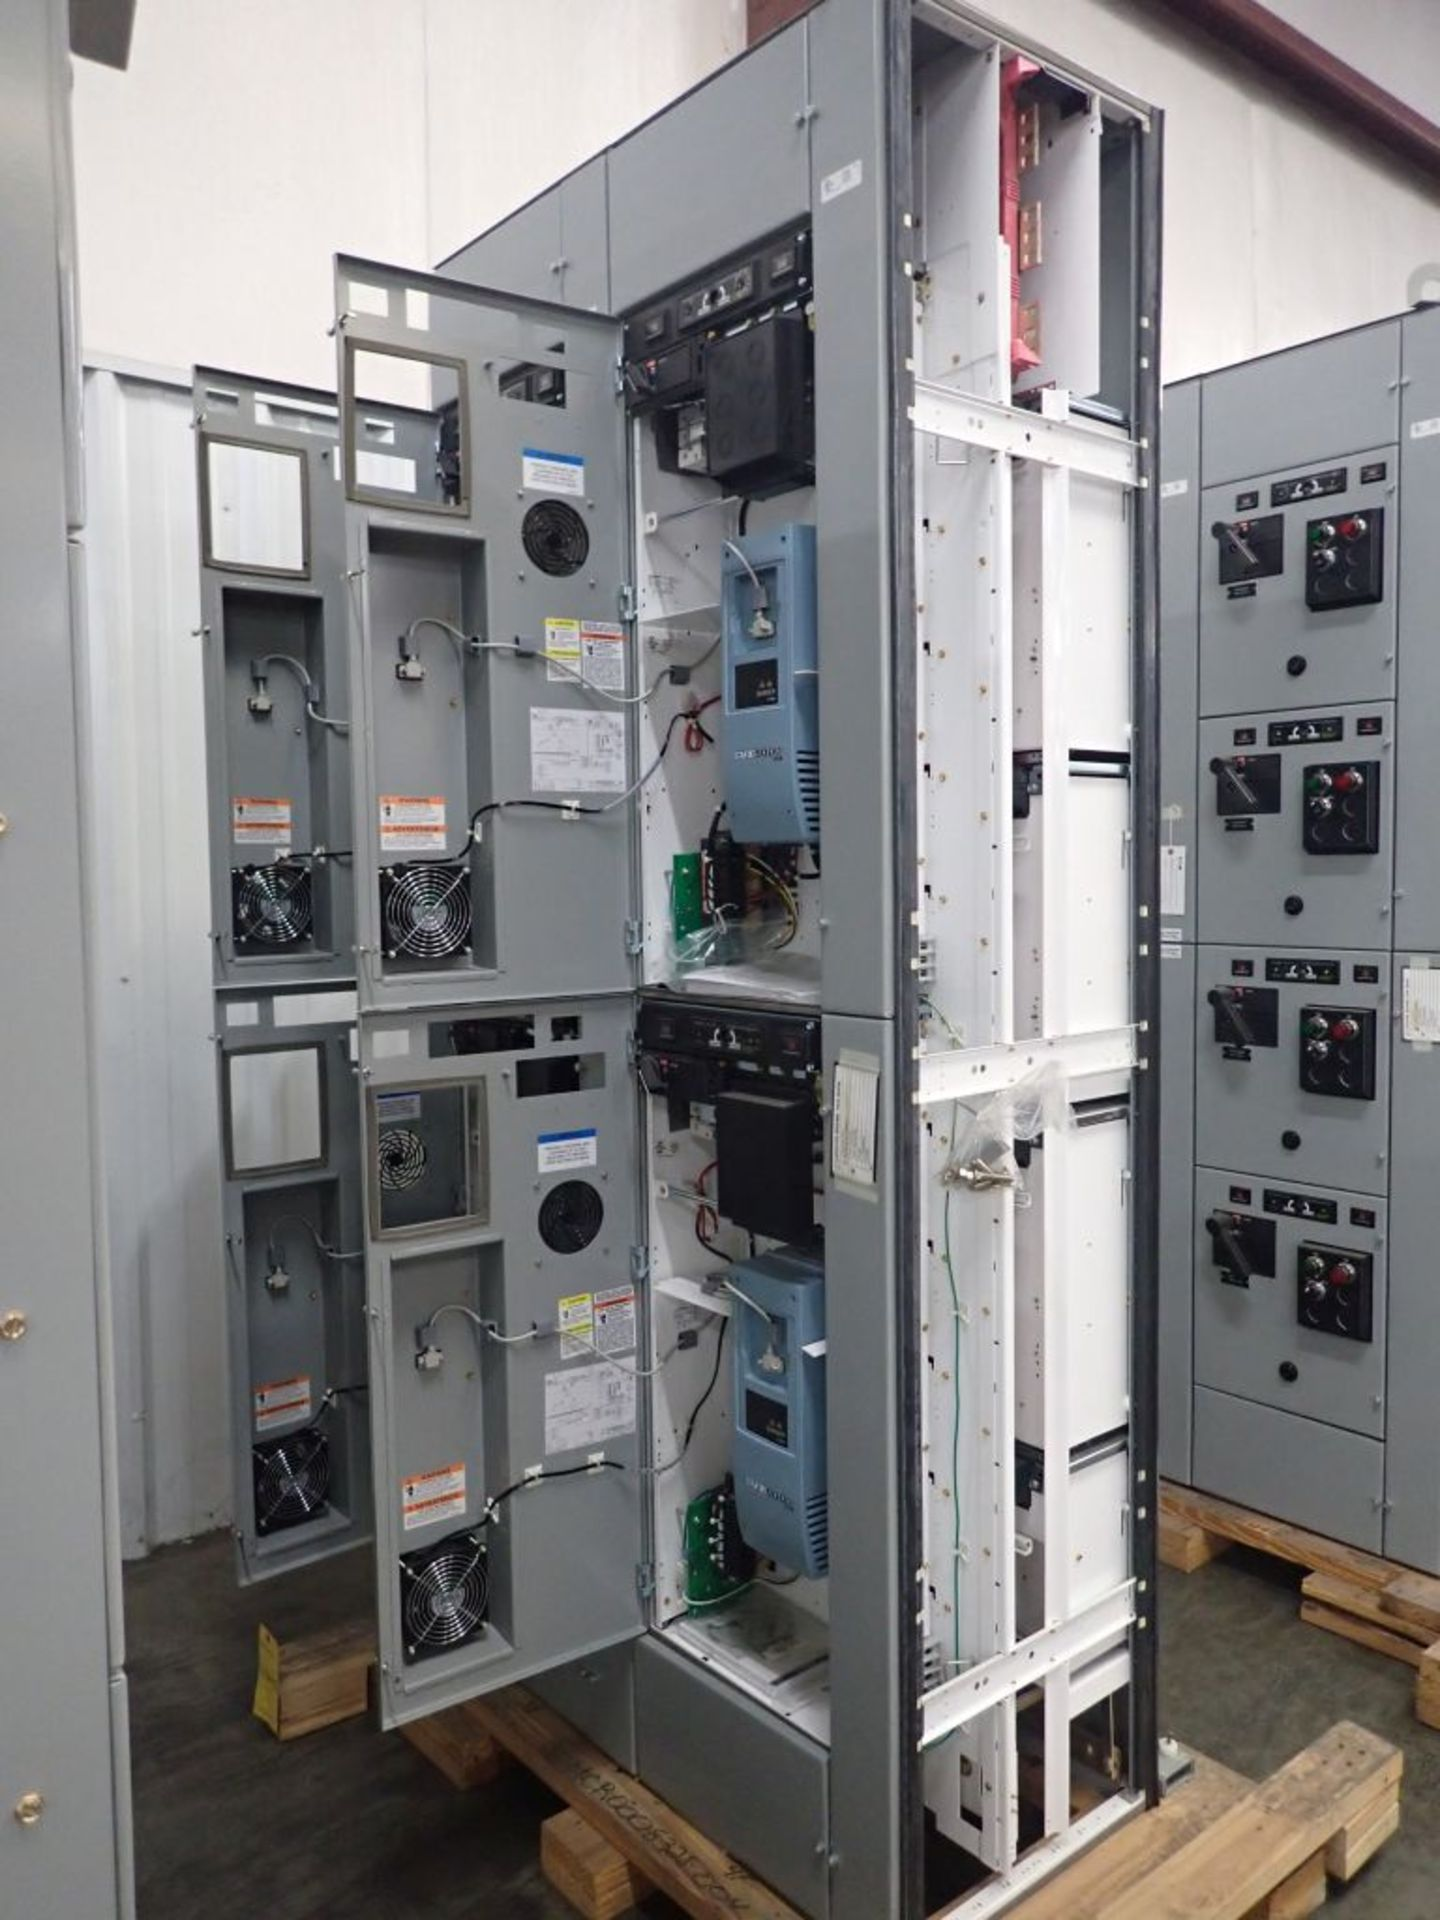 Eaton Freedom 2100 Series Motor Control Center | (2) F206-7A-10HP; (3) F206-15A-10HP; (1) FDRB-100A; - Image 7 of 87